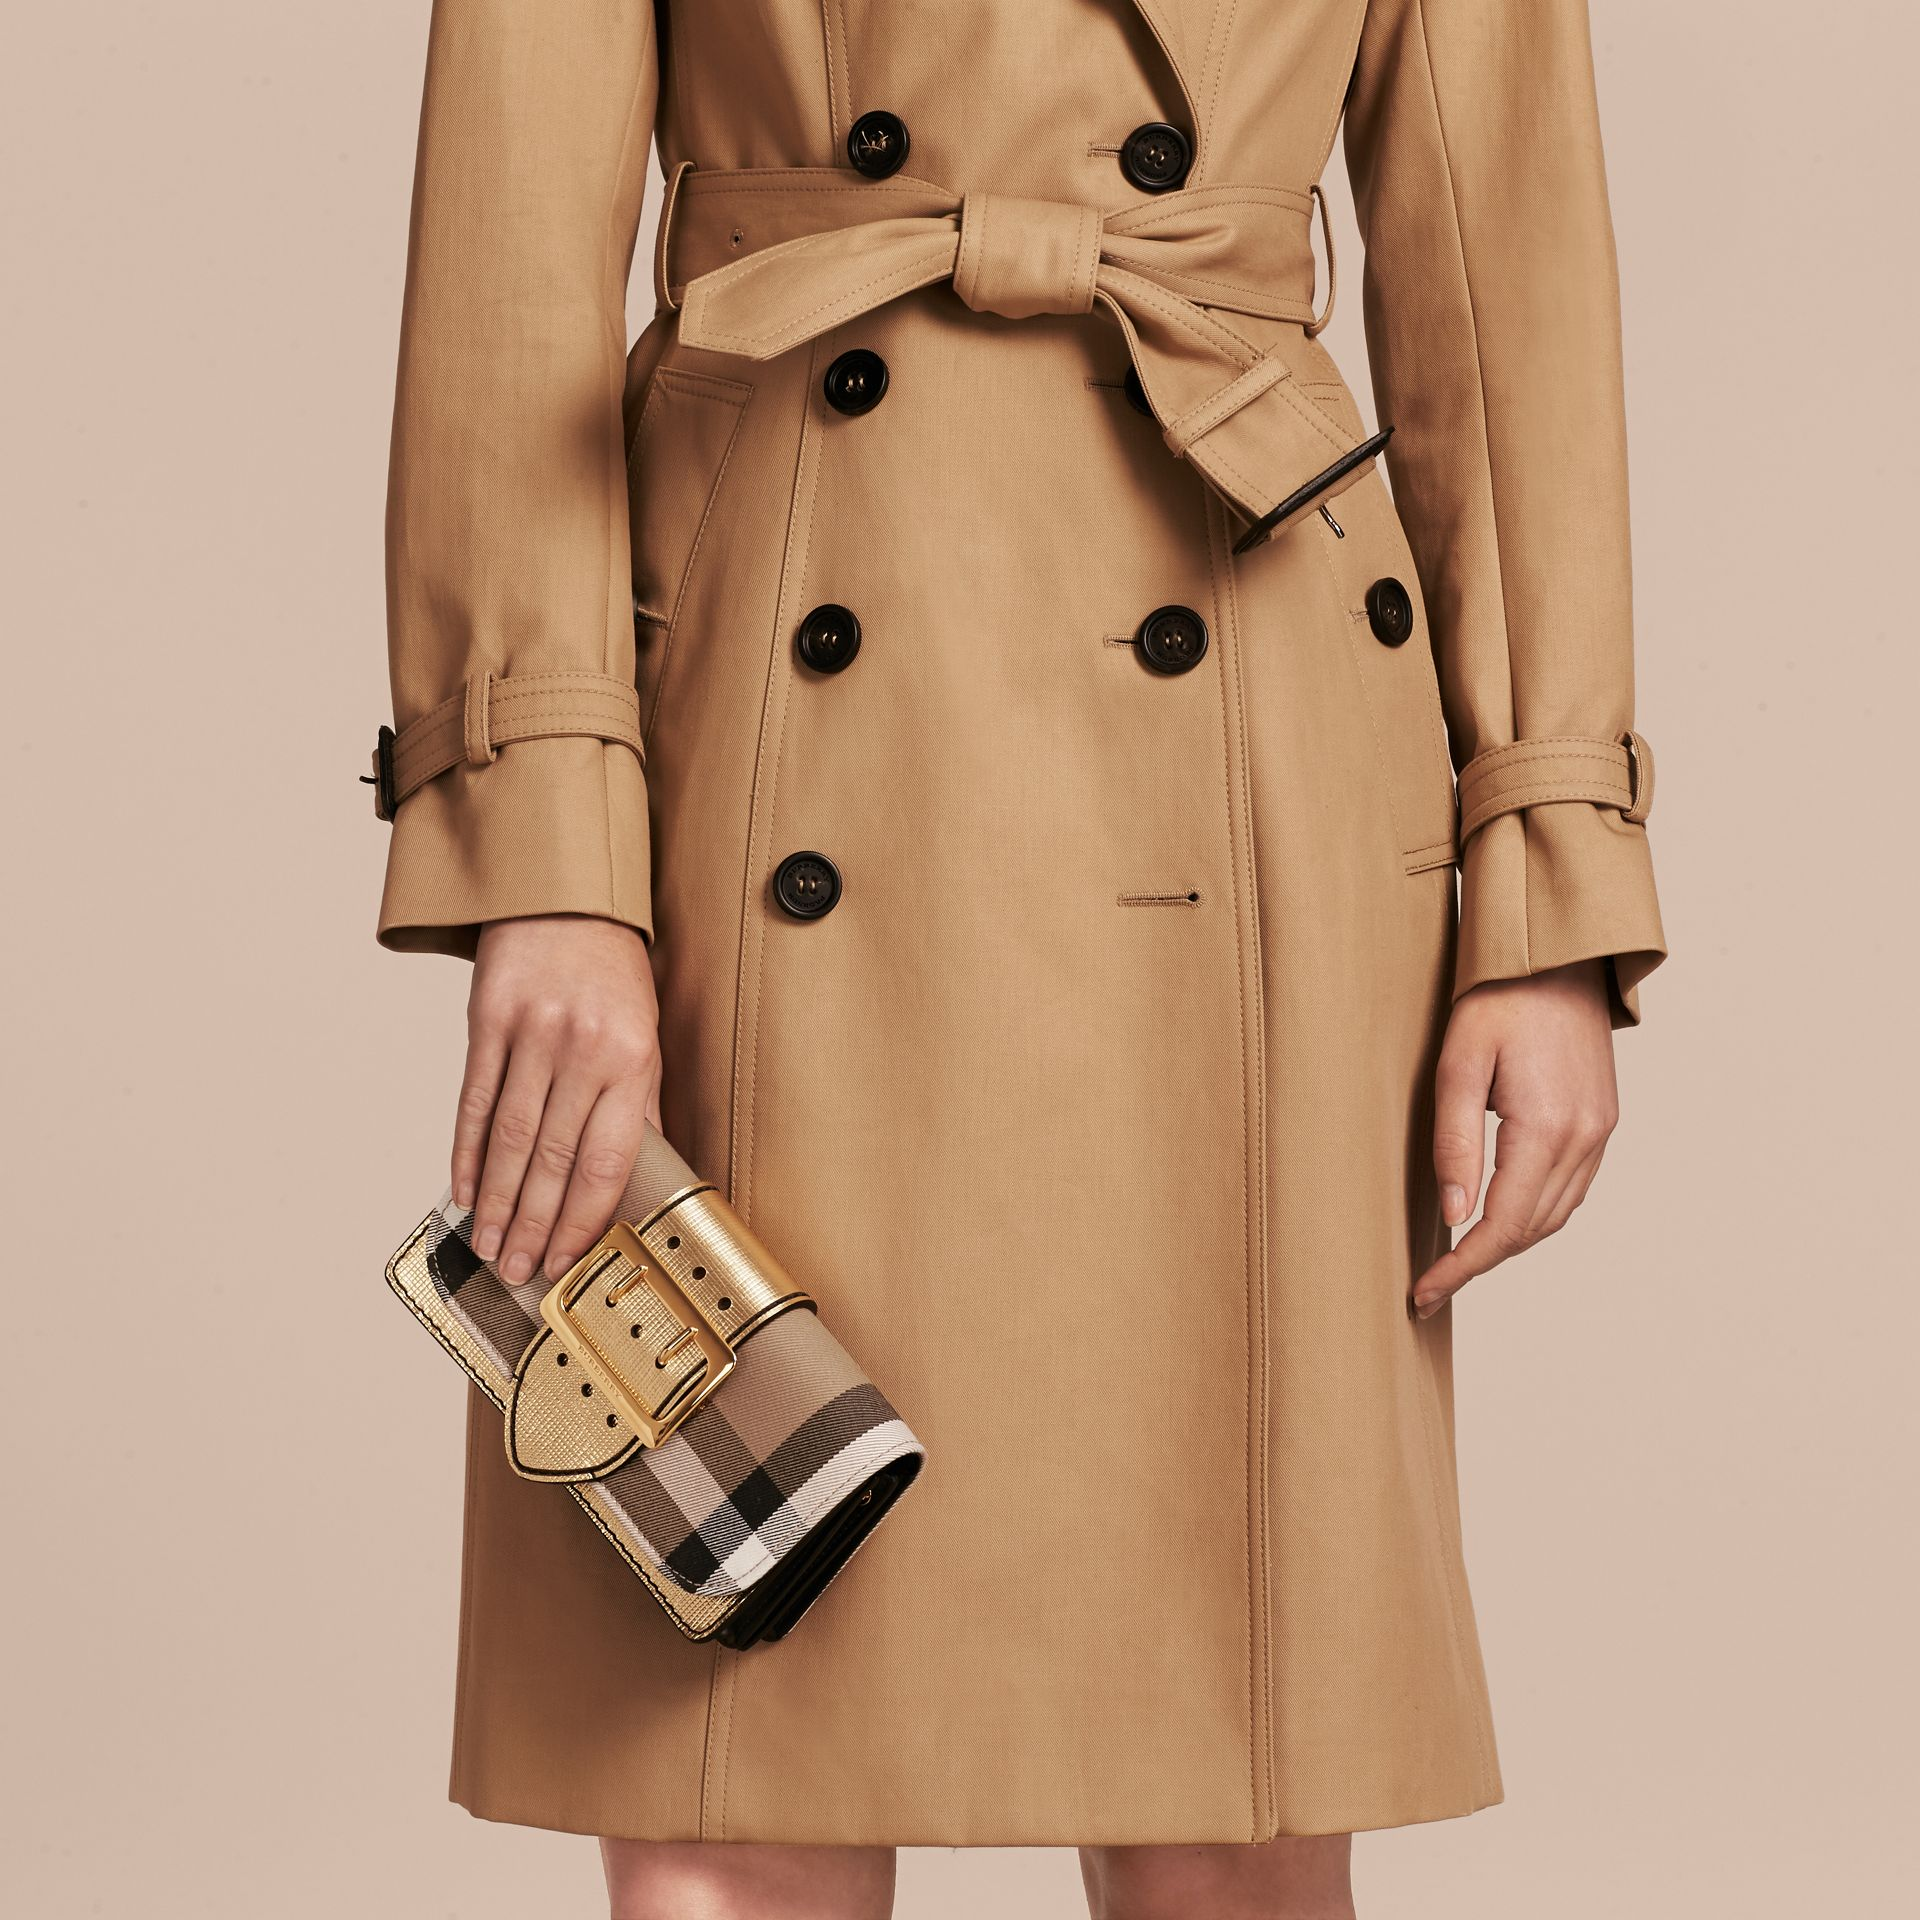 The Small Buckle Bag in House Check and Leather in Gold - Women | Burberry United Kingdom - gallery image 3